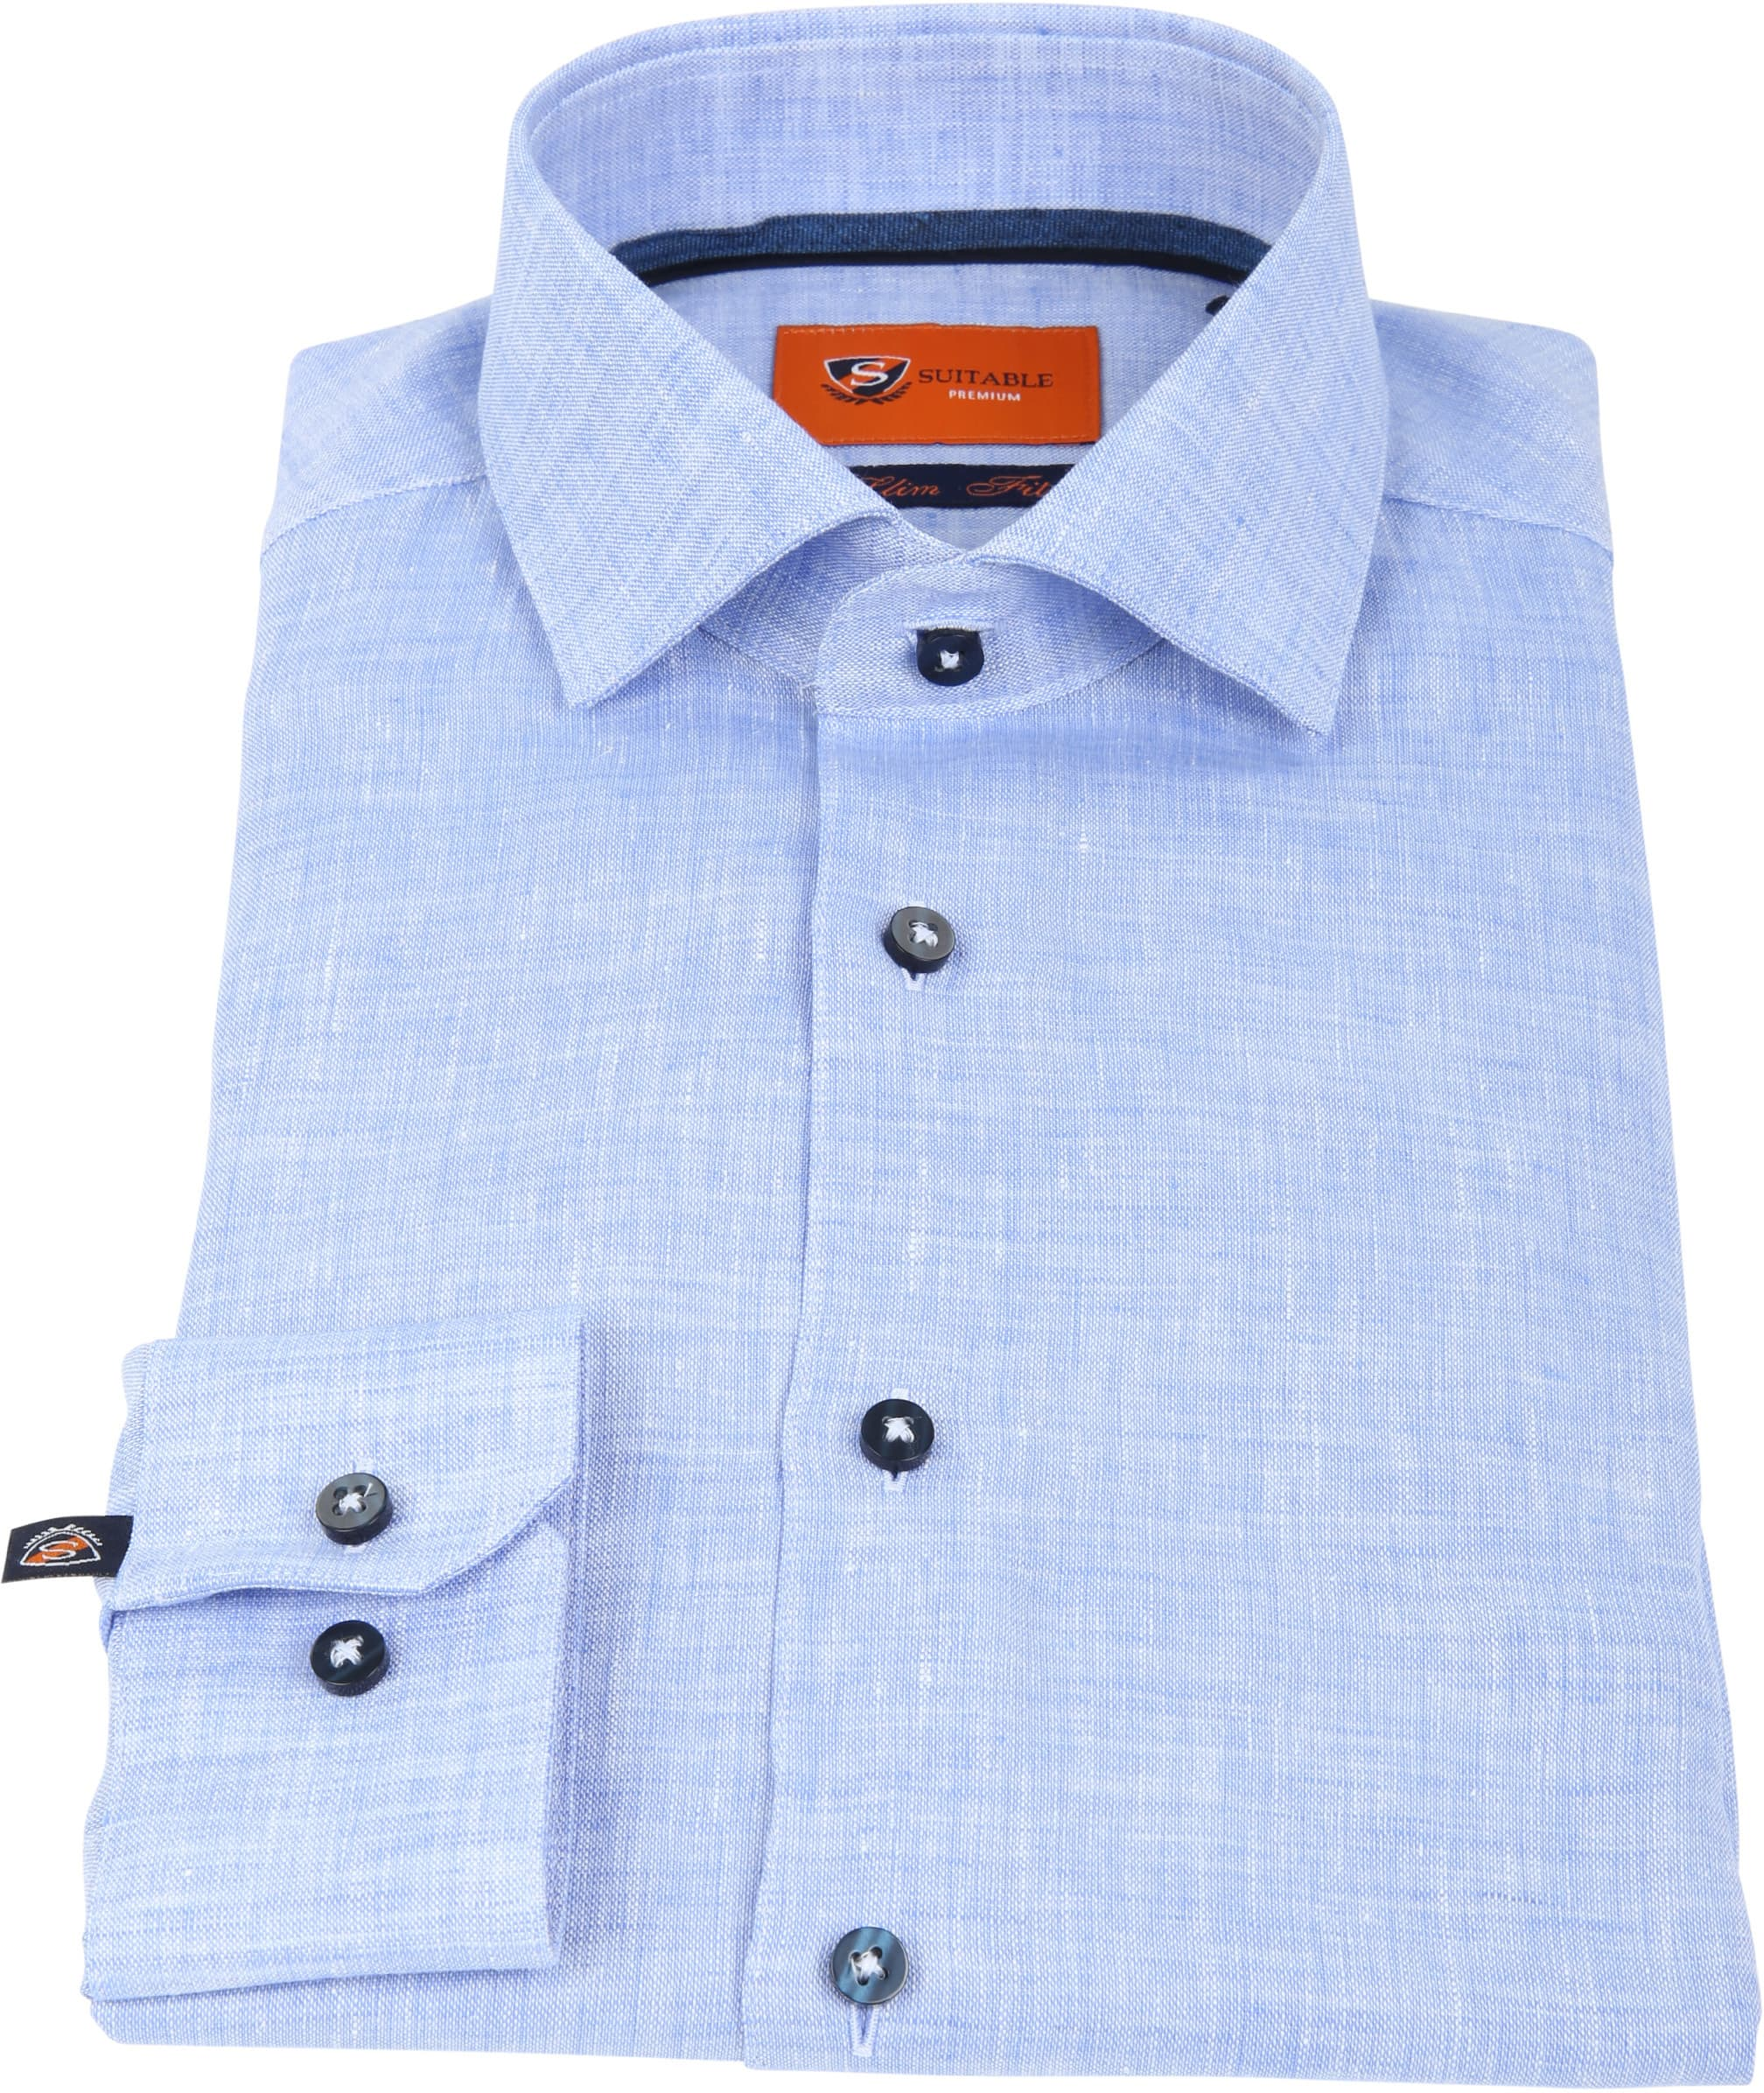 Suitable Shirt Linen Blue D81-12 photo 2